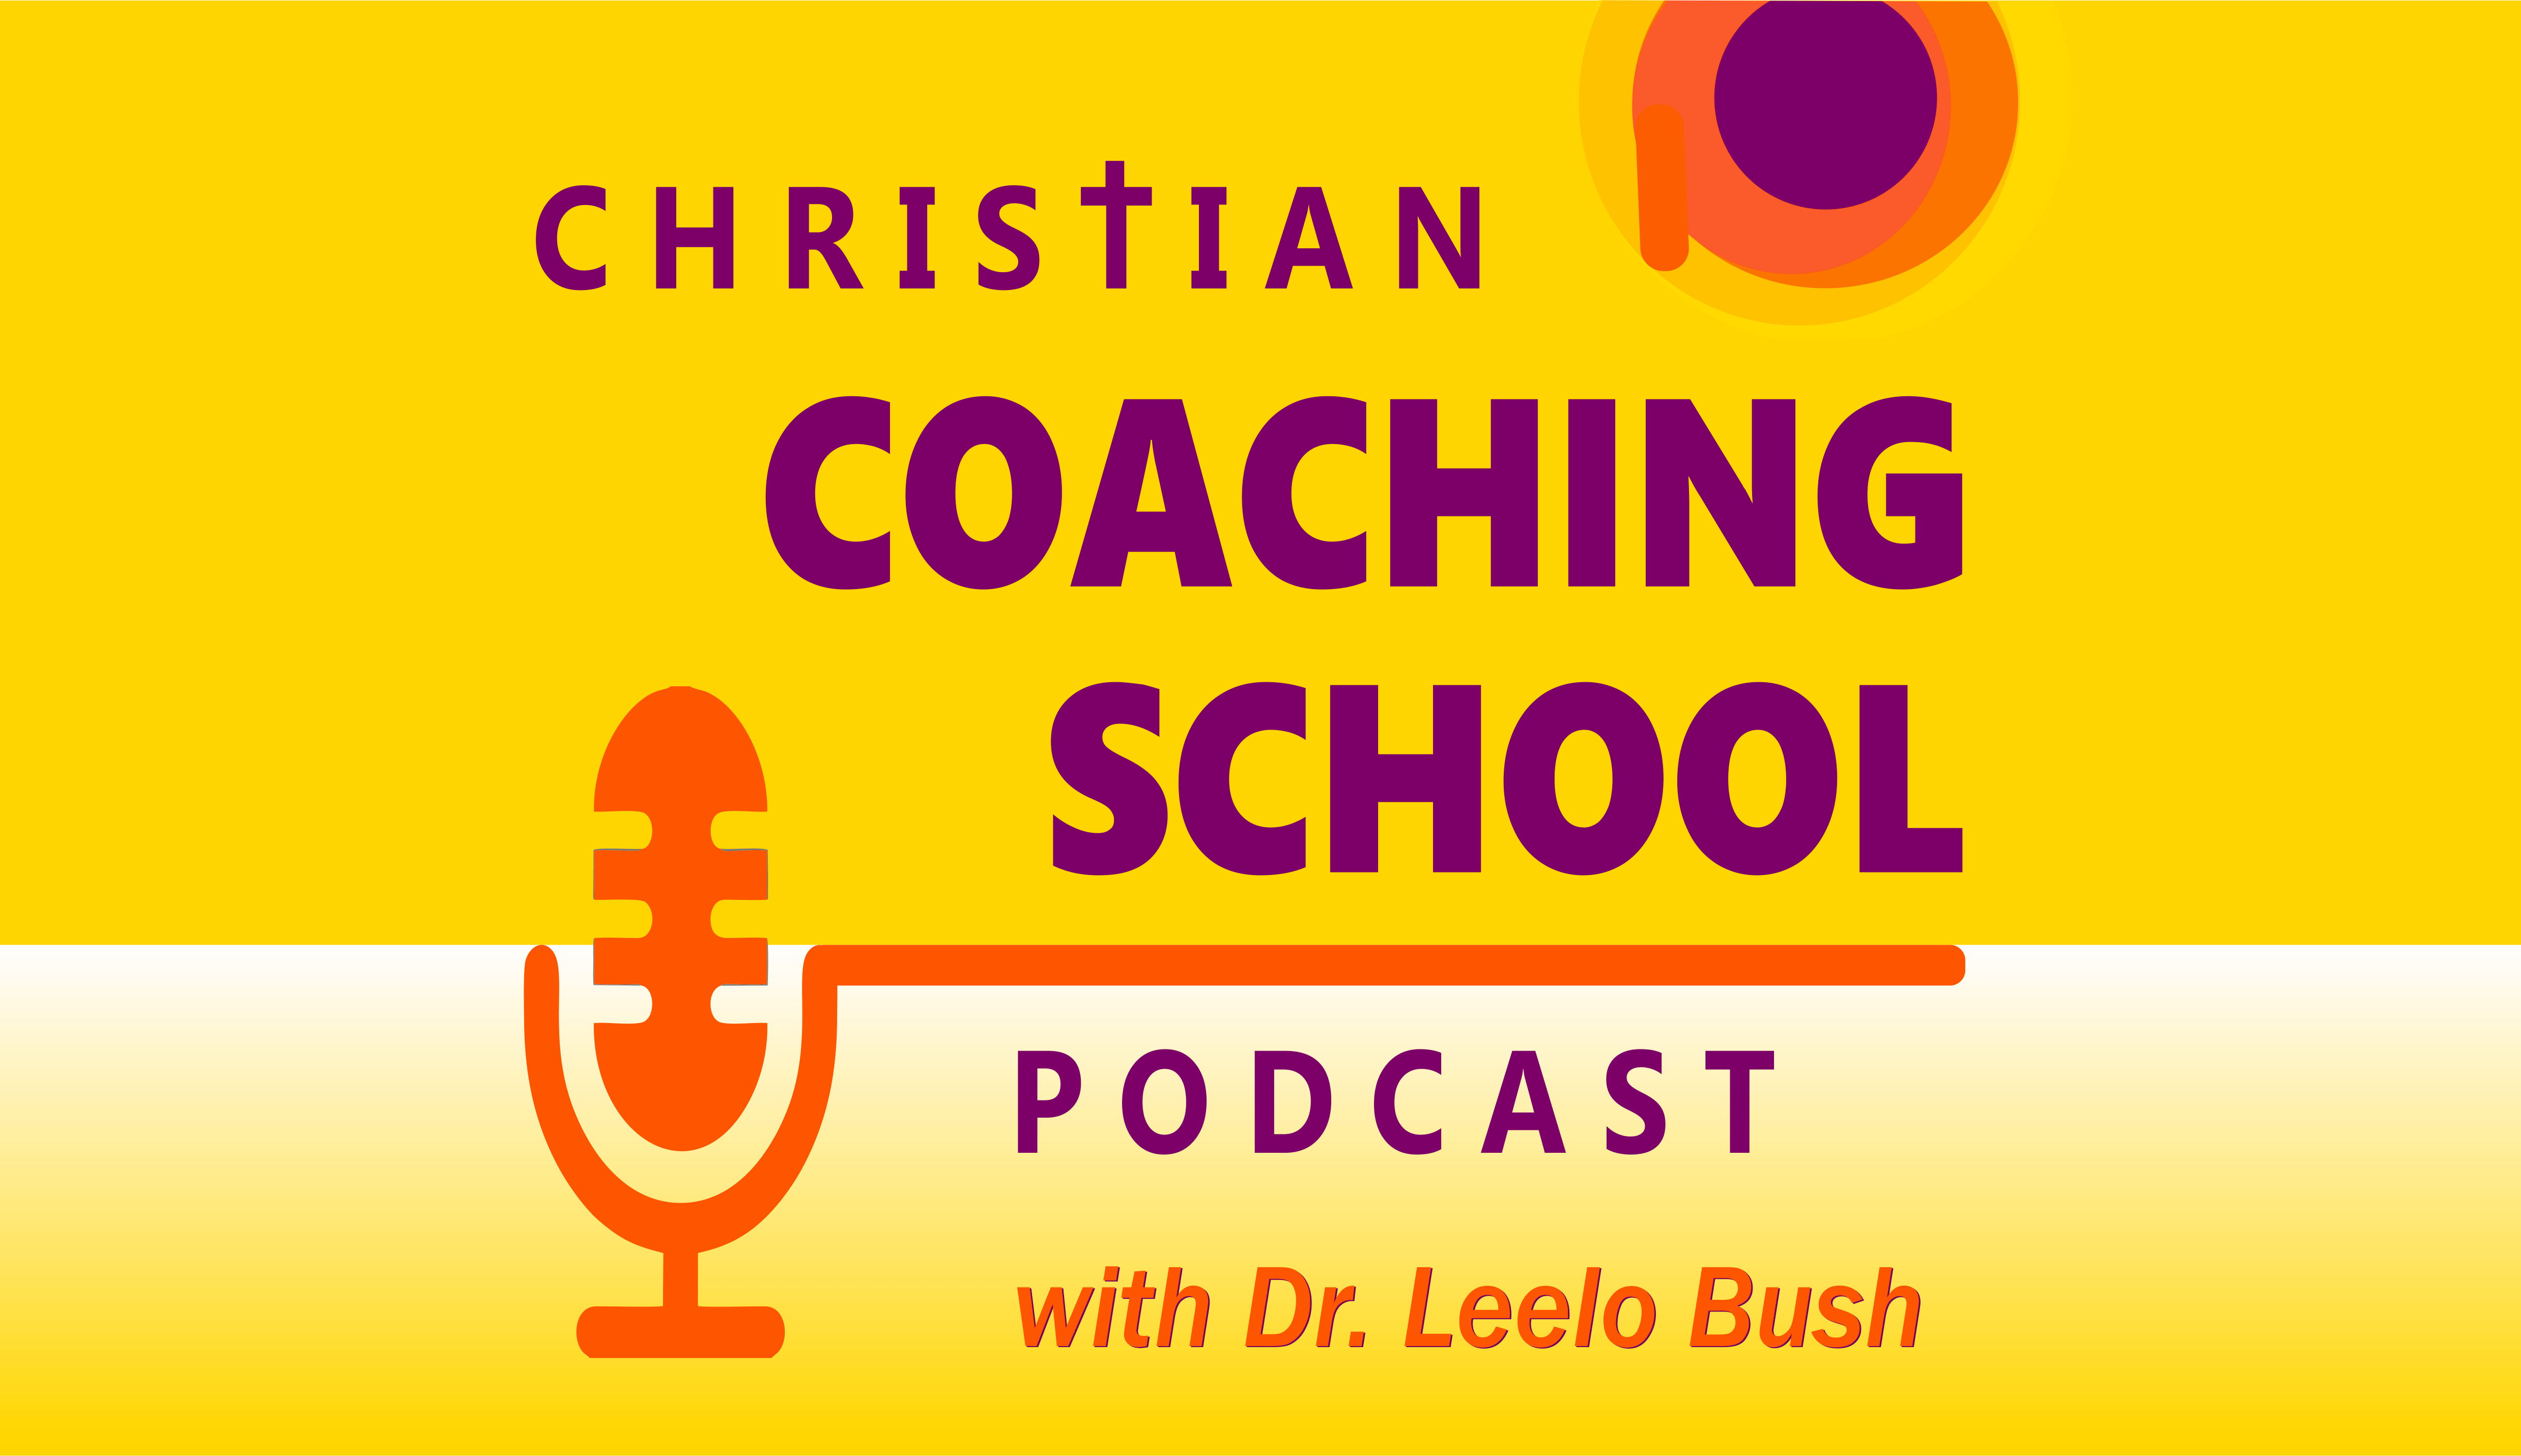 Christian Coaching School Podcast - new art Oct 2018